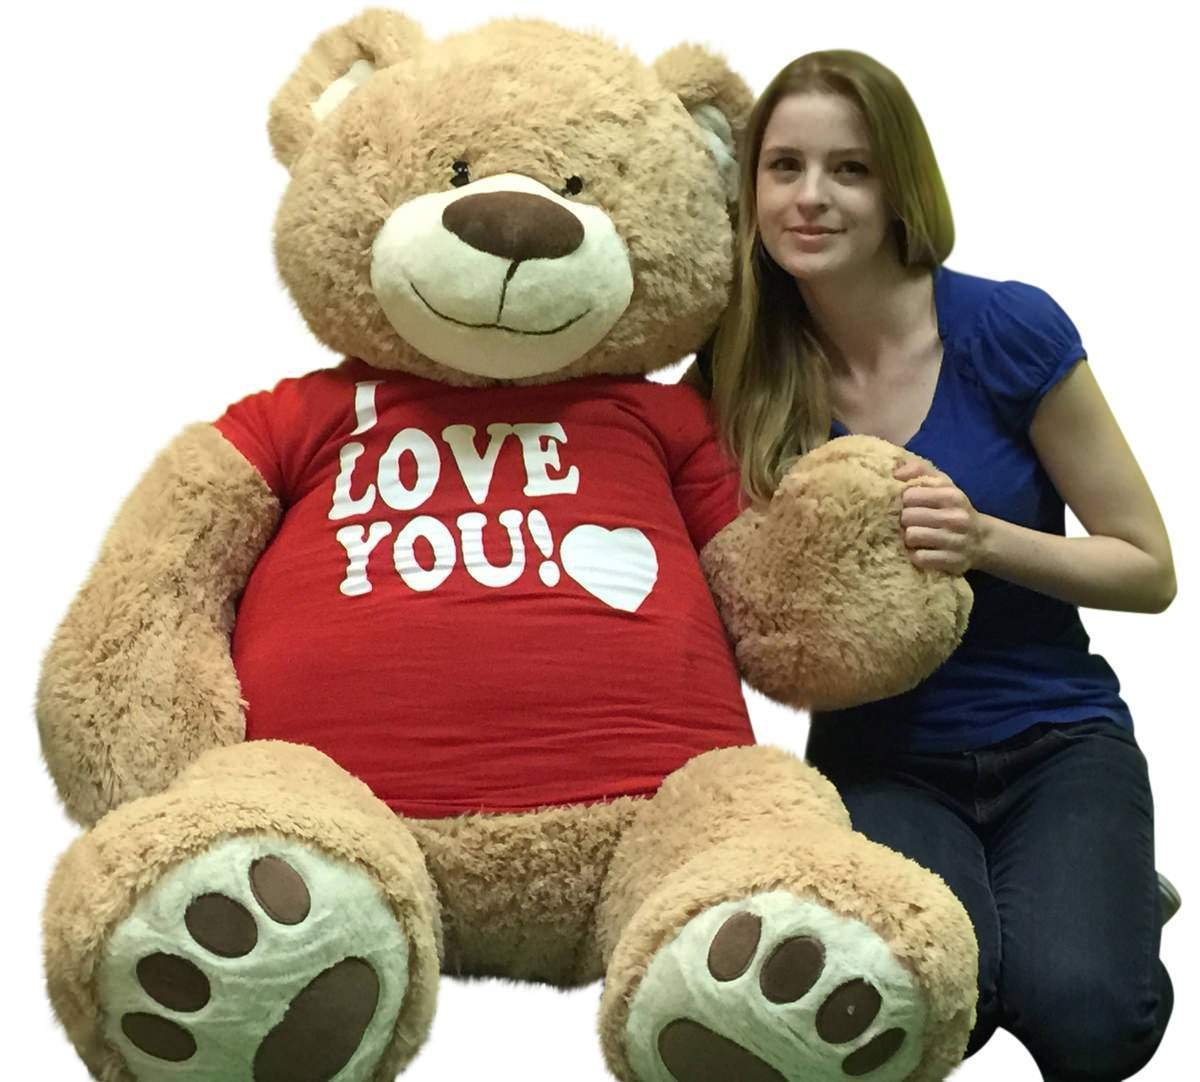 amazoncom i love you giant 5 foot teddy bear soft 60 inch wears i love you t shirt weighs 16 pounds toys games